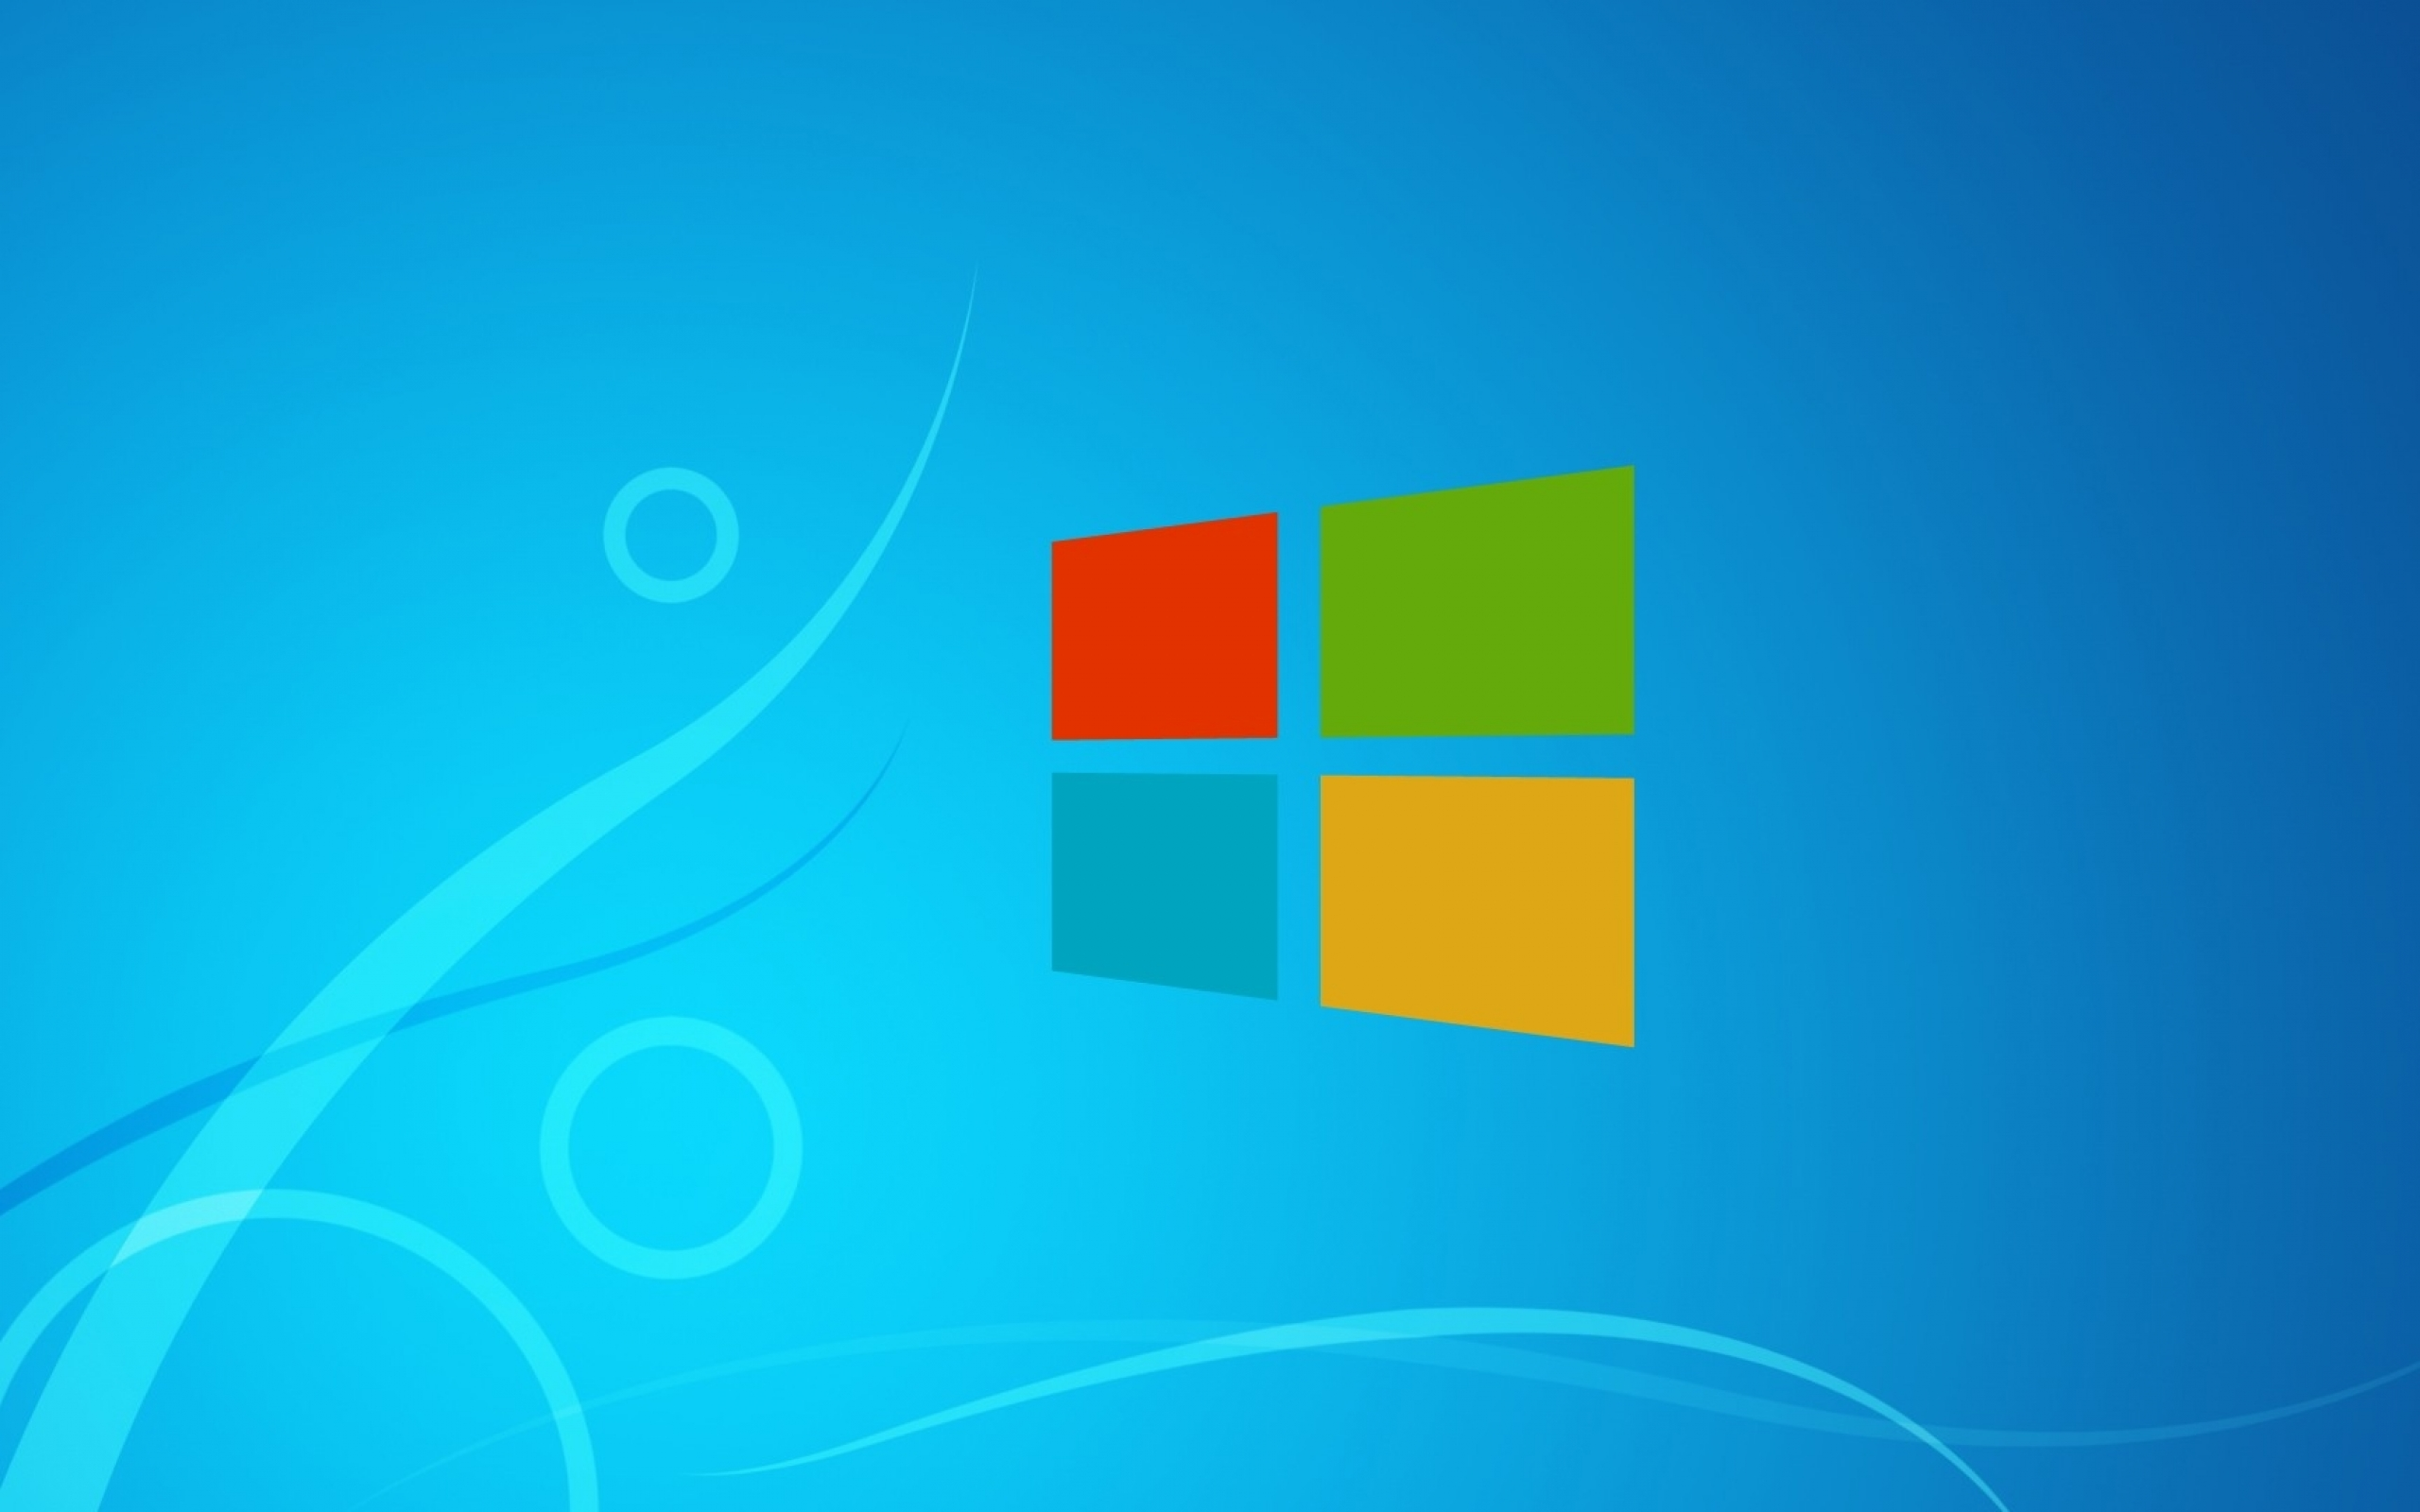 Windows 8 type Wallpaper for windows 7 High quality desktop wallpapers 2560x1600